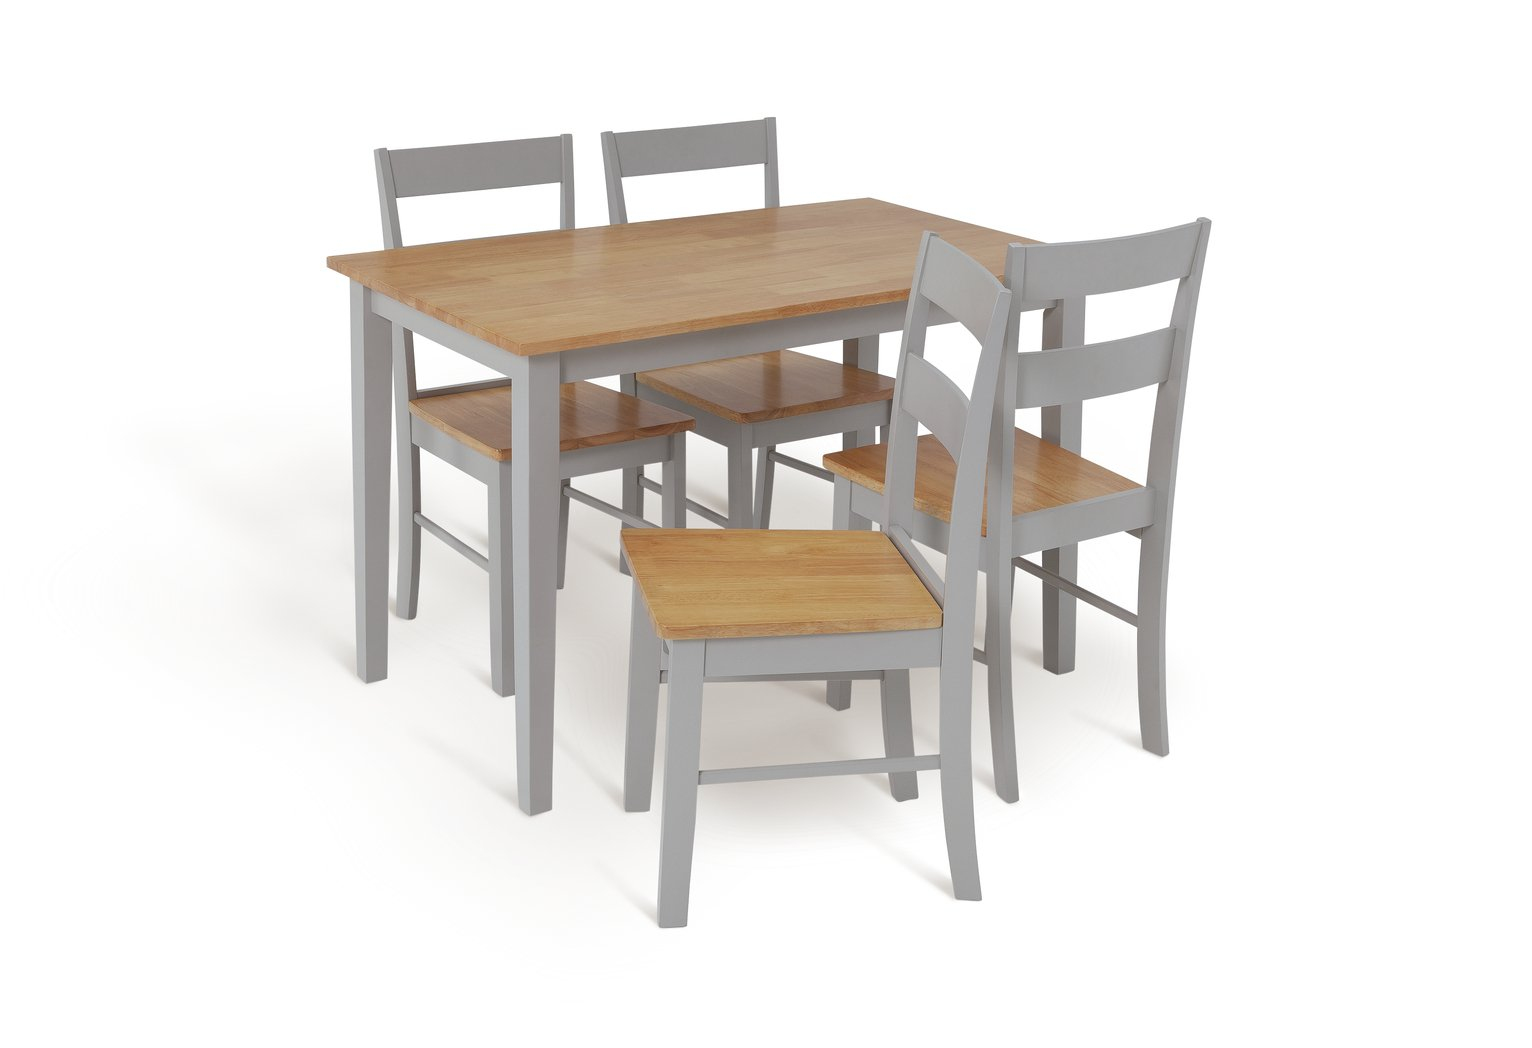 Argos Home Chicago Solid Wood Dining Table & 4 Grey Chairs